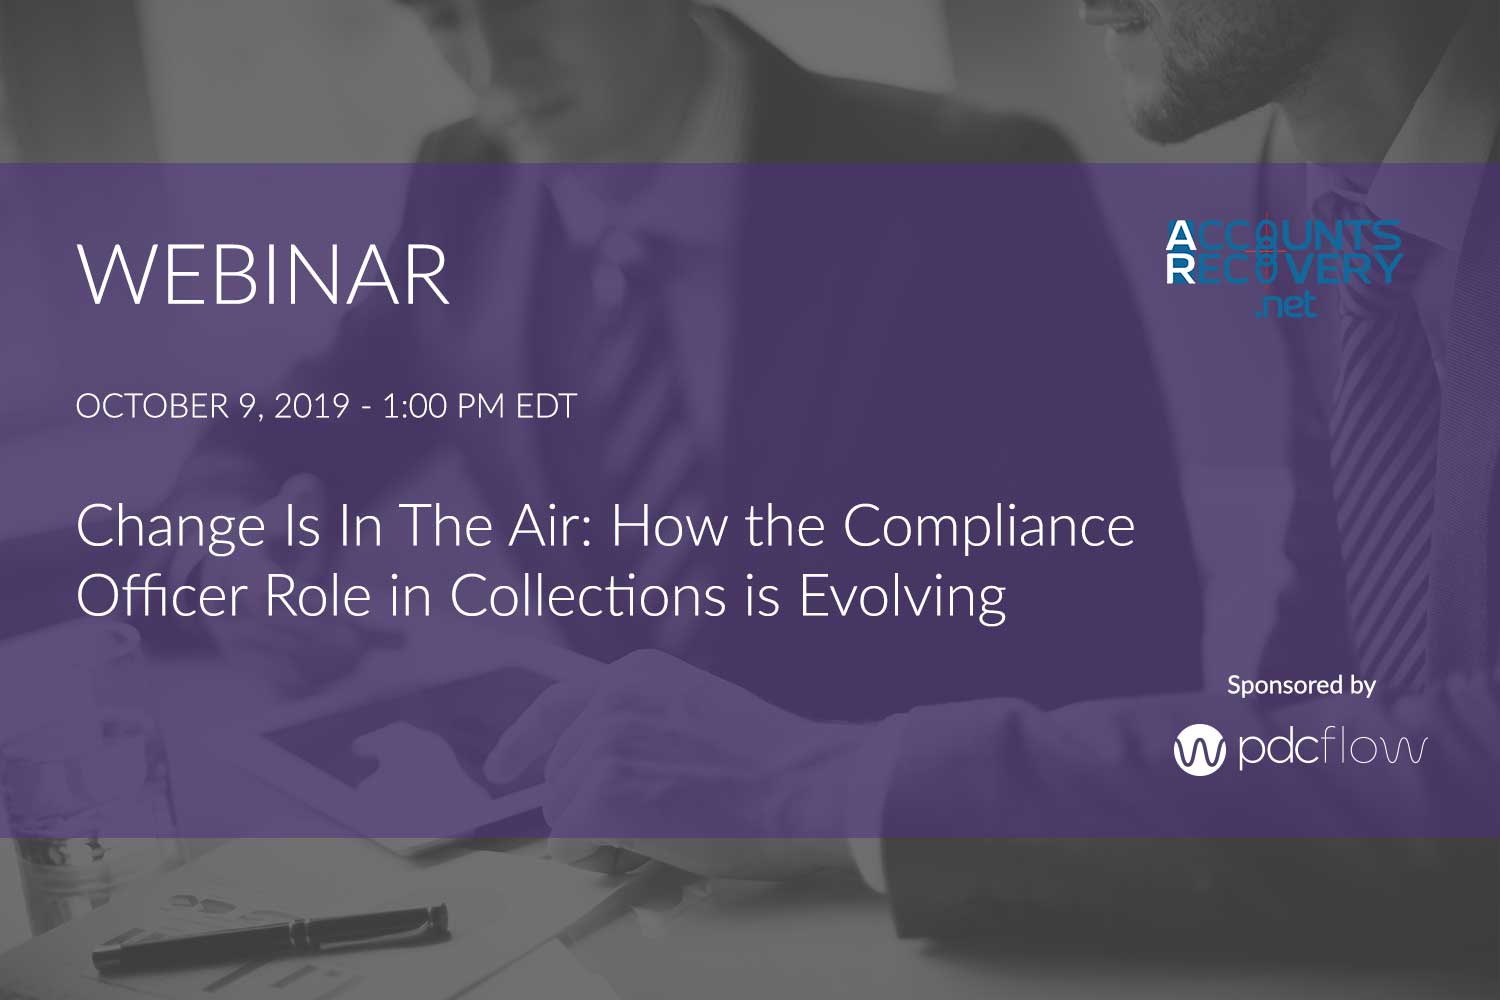 CHANGE IS IN THE AIR: HOW THE COMPLIANCE OFFICER ROLE IN COLLECTIONS IS EVOLVING